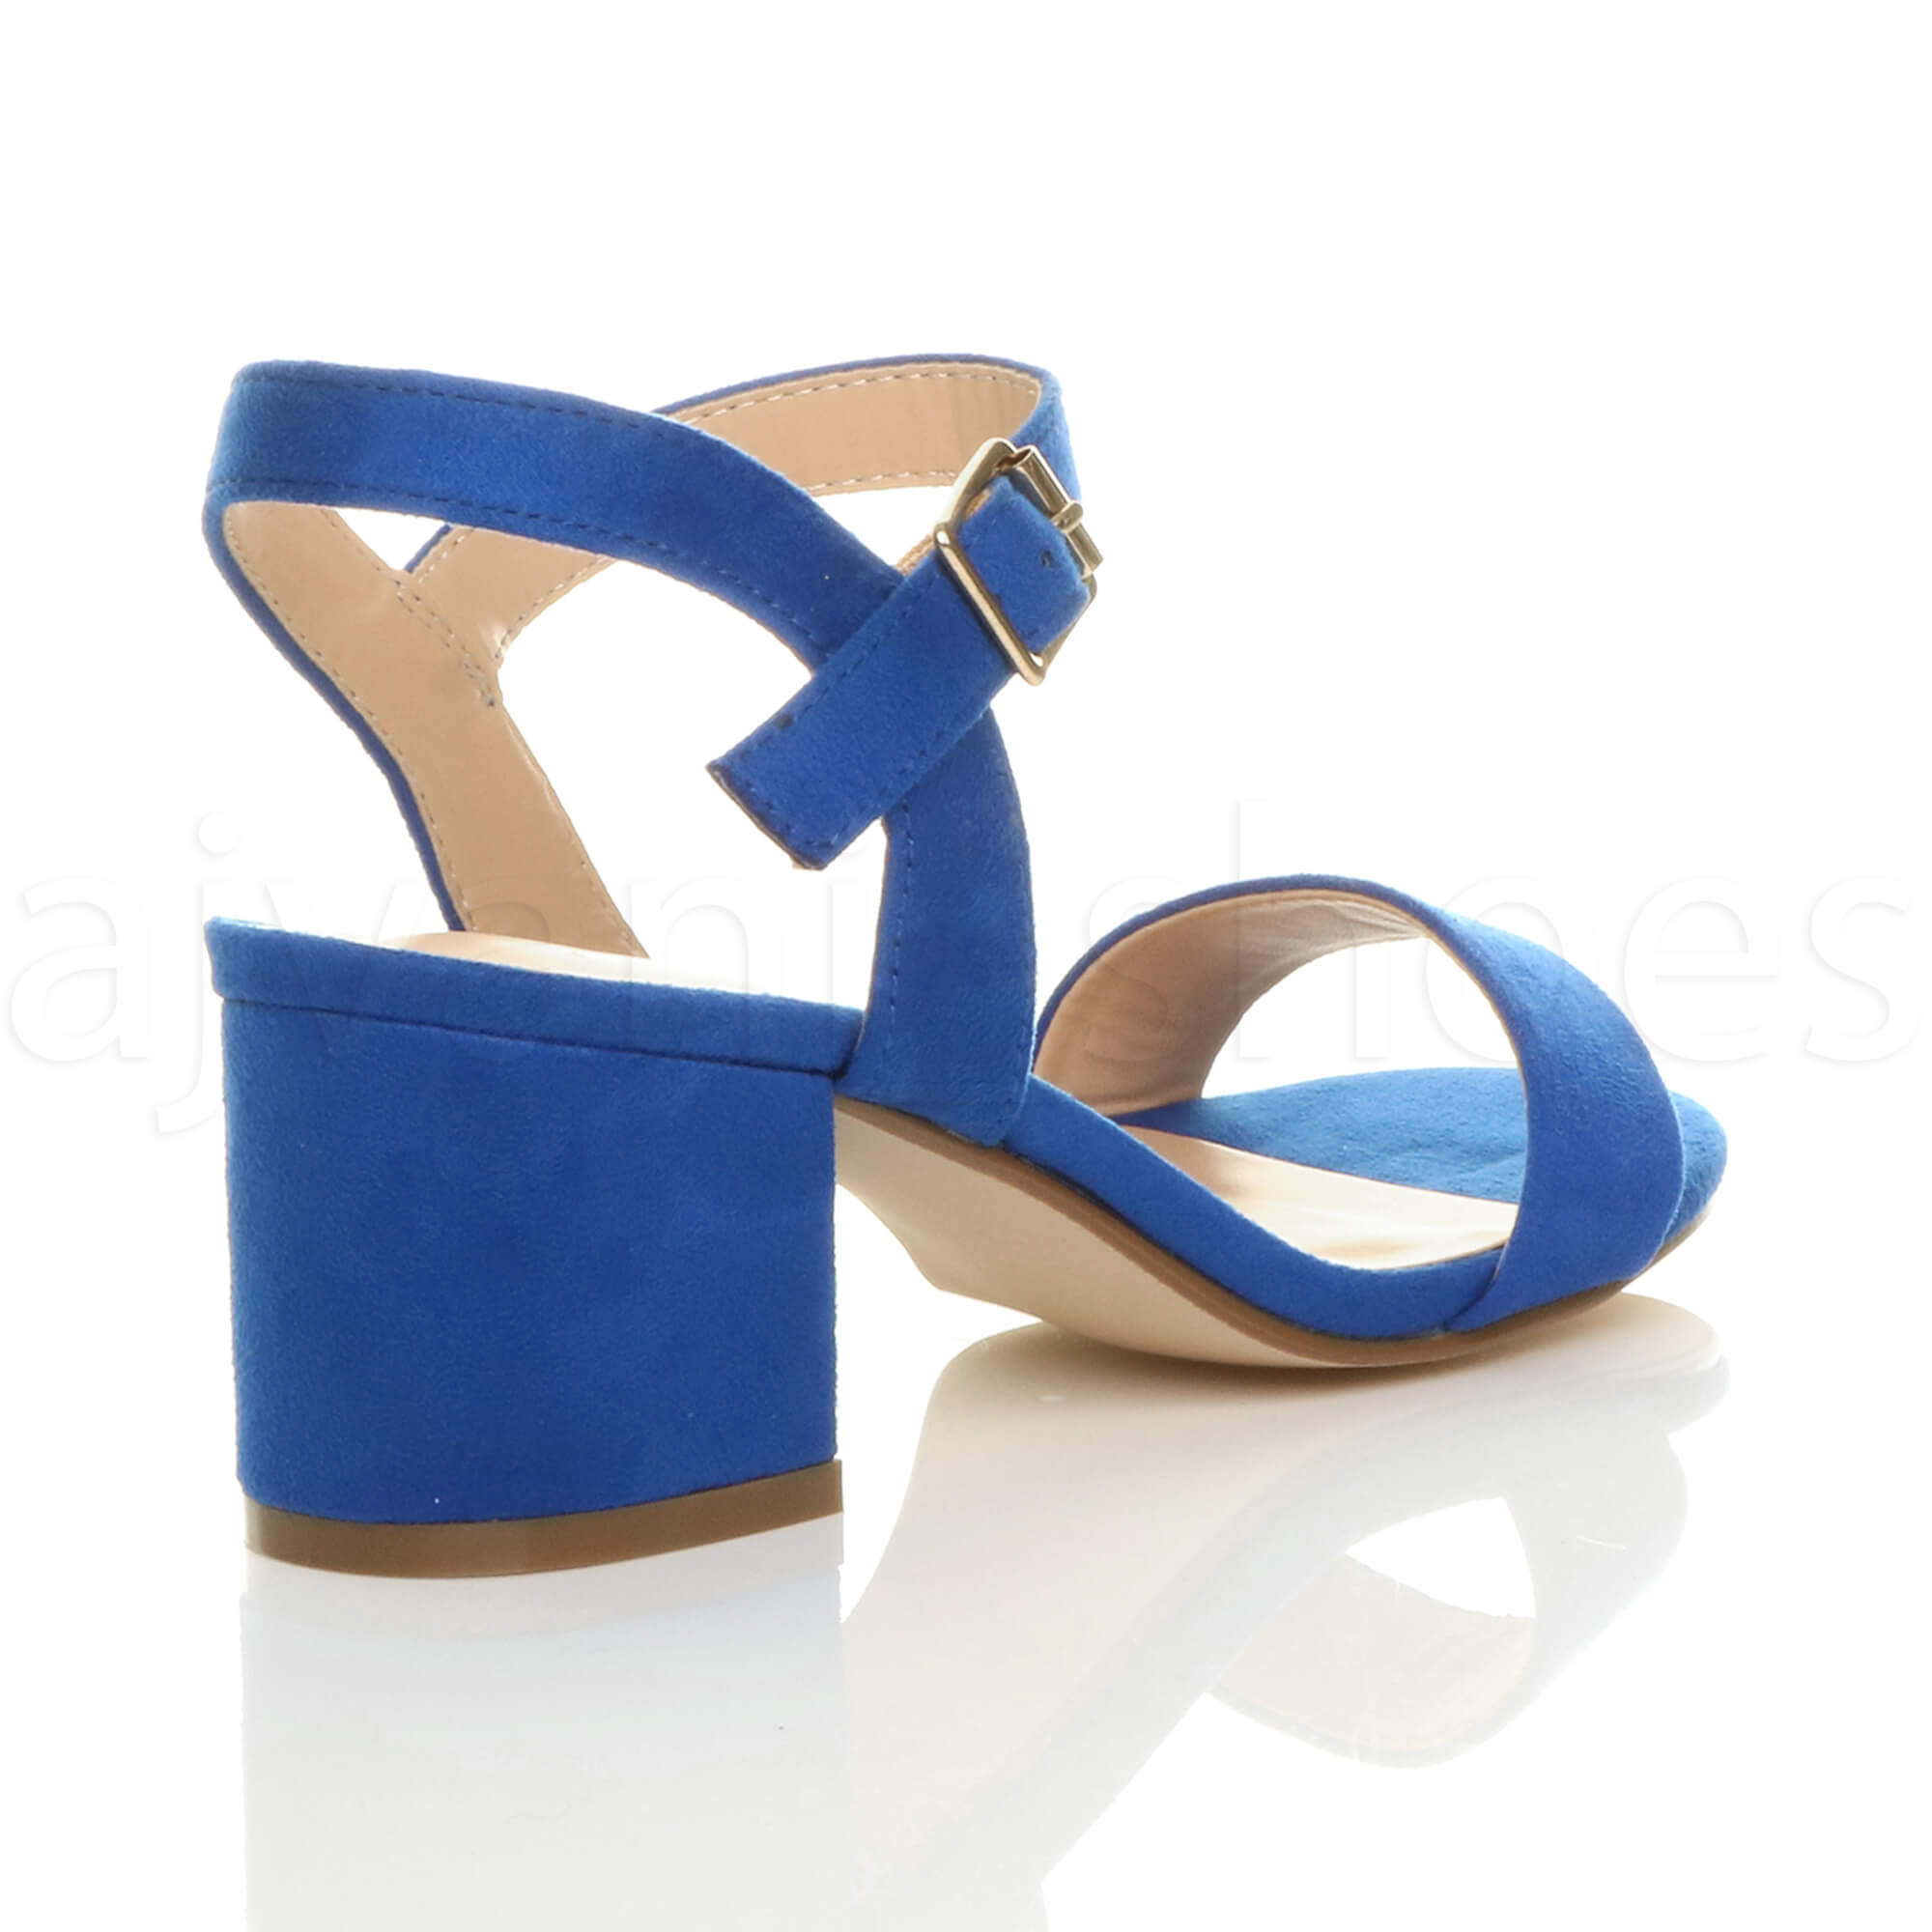 WOMENS-LADIES-MID-LOW-BLOCK-HEEL-PEEP-TOE-ANKLE-STRAP-STRAPPY-PARTY-SANDALS-SIZE thumbnail 37